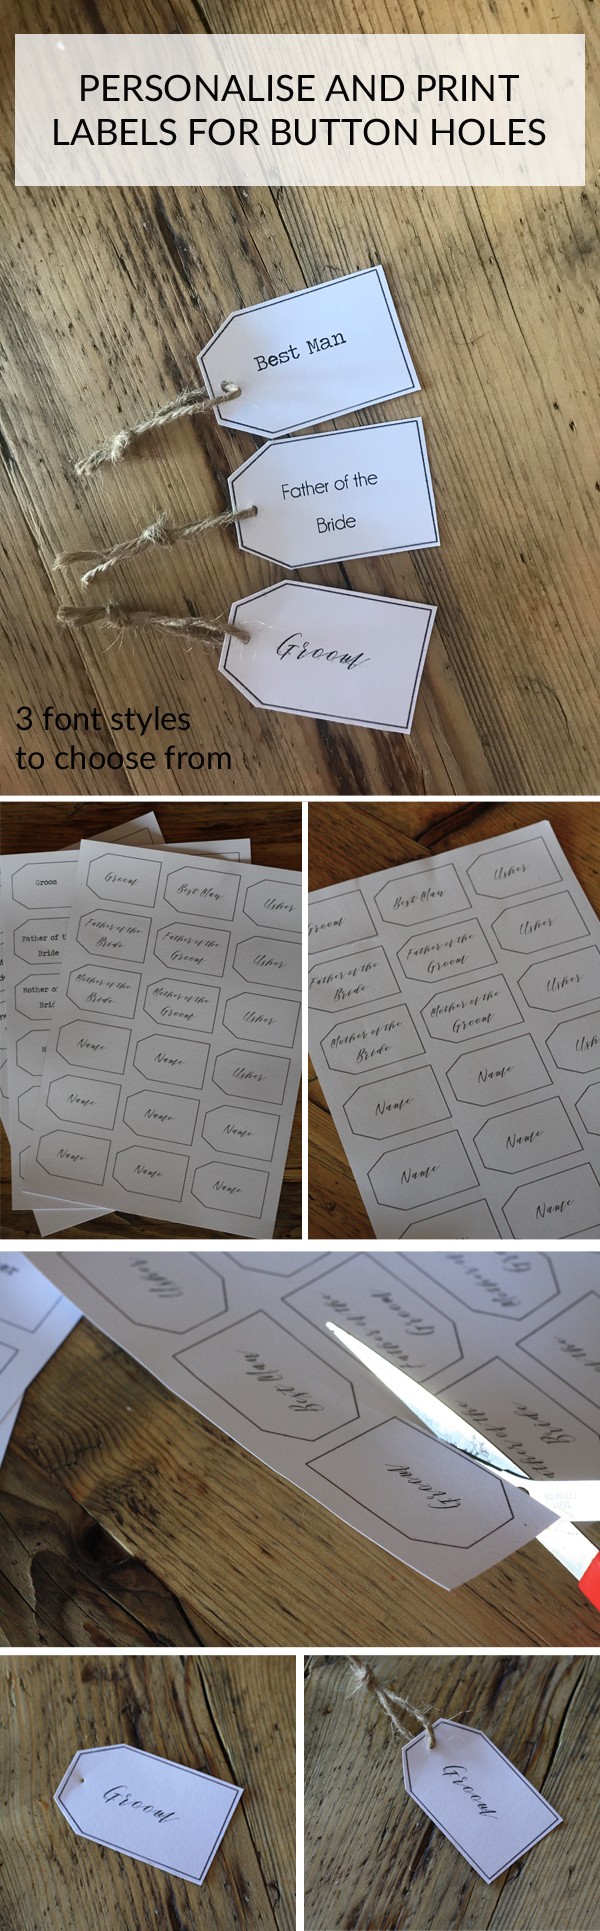 personalise and print labels for button holes wedding templates